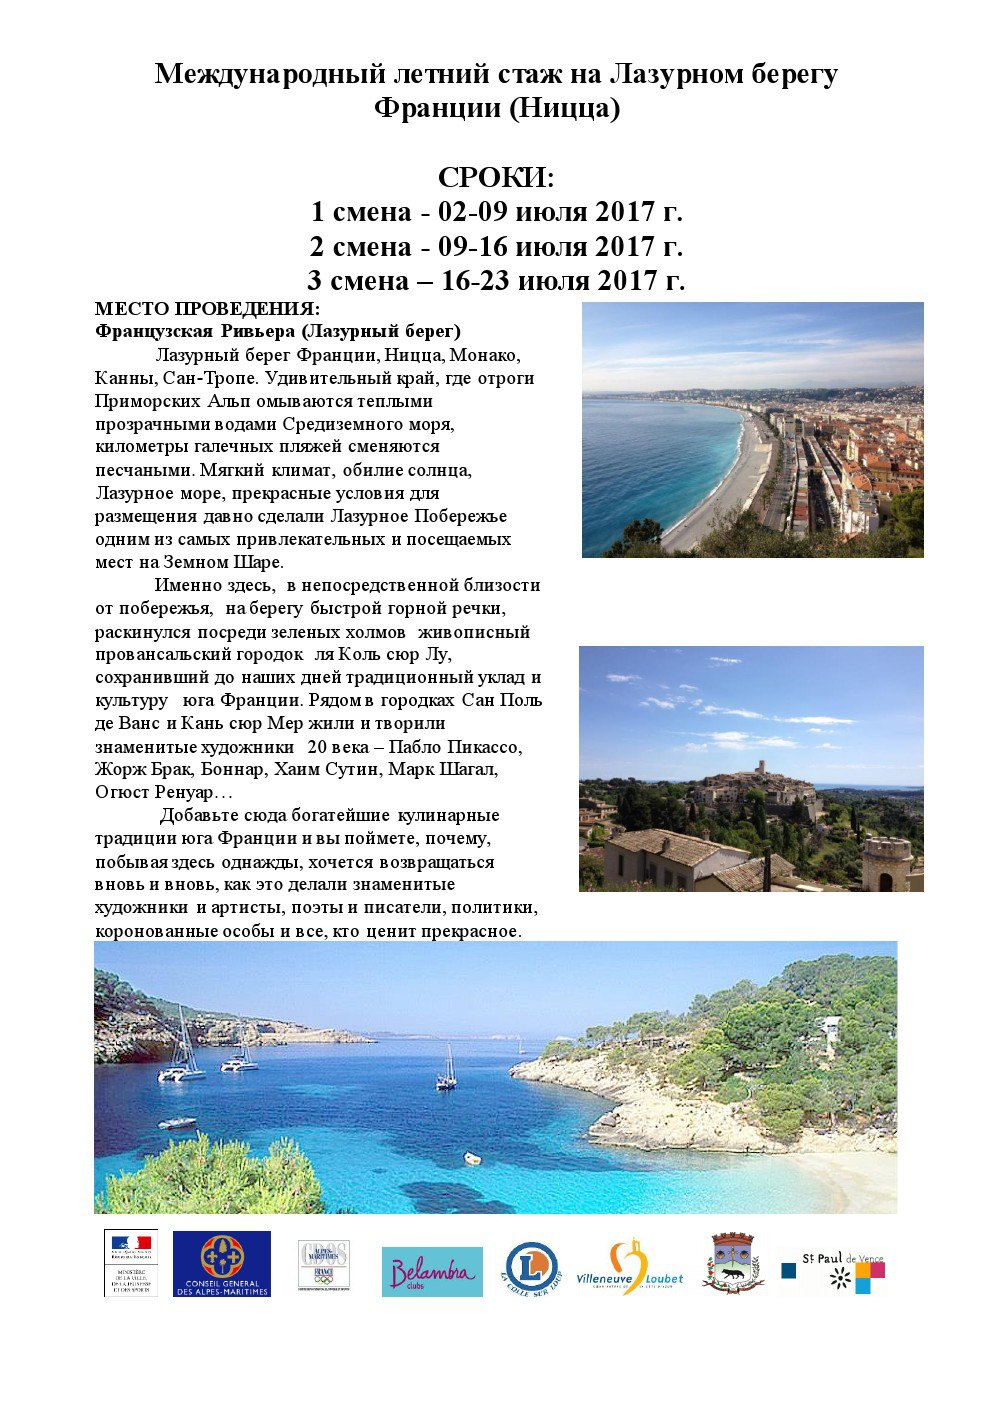 INTERNATIONAL SUMMER TRAINING CAMP AT FRENCH RIVIERA (NICE), 3 shifts – July 2017